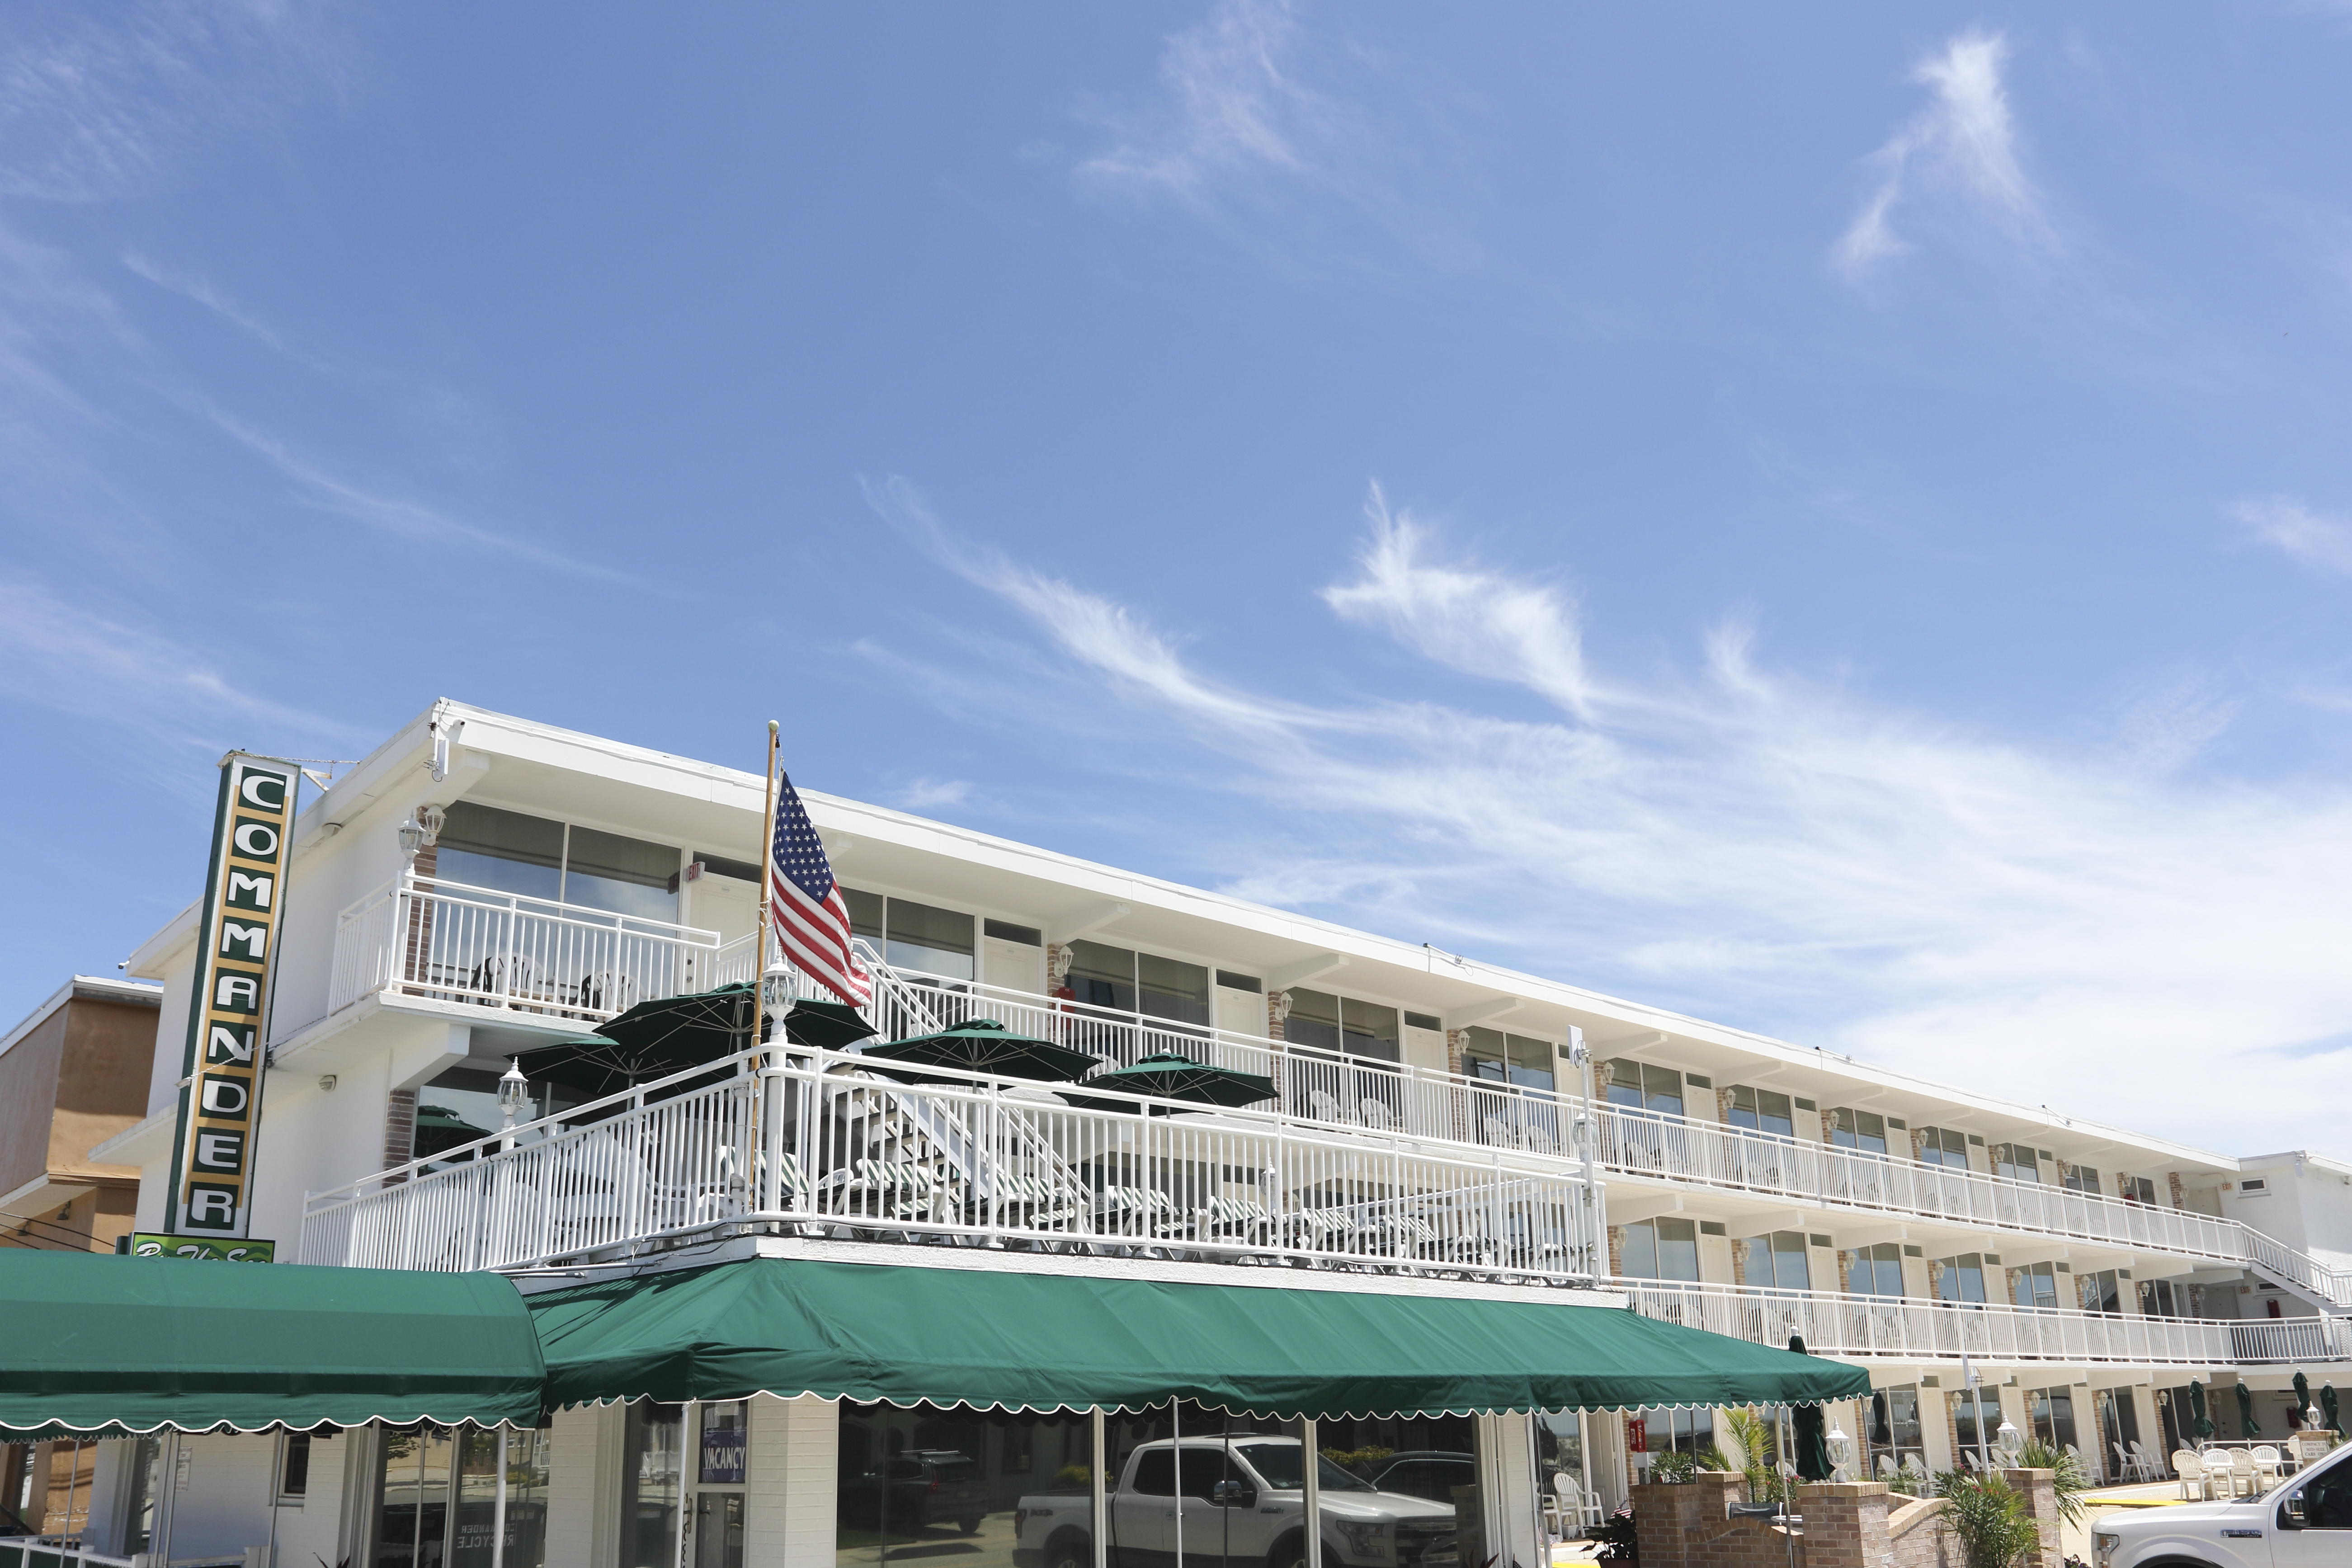 Commander Motel in Wildwood Crest